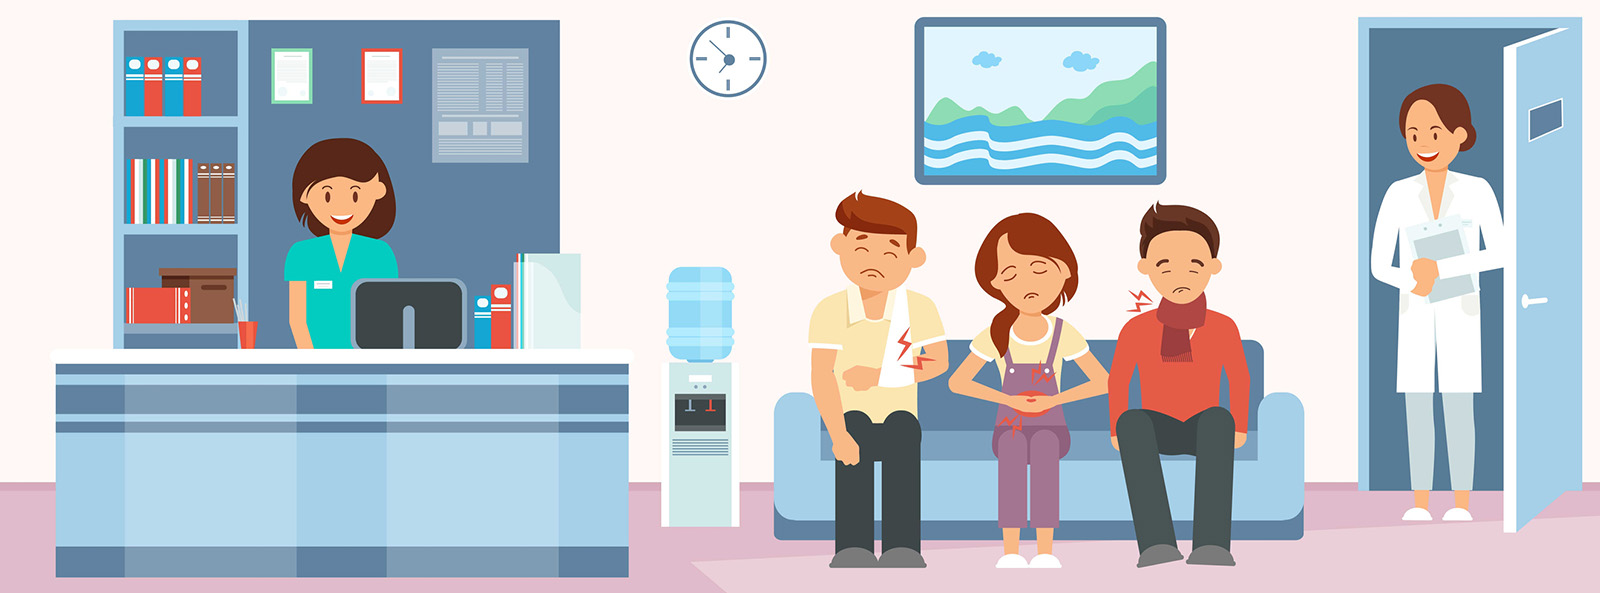 Patients in Hospital Reception Flat Illustration. Sitting People with Stomach Ache, Arm Fracture, Sore Throat. Cartoon Color Character. Emergency Room. Clinic Hall Interior Design Clipart.